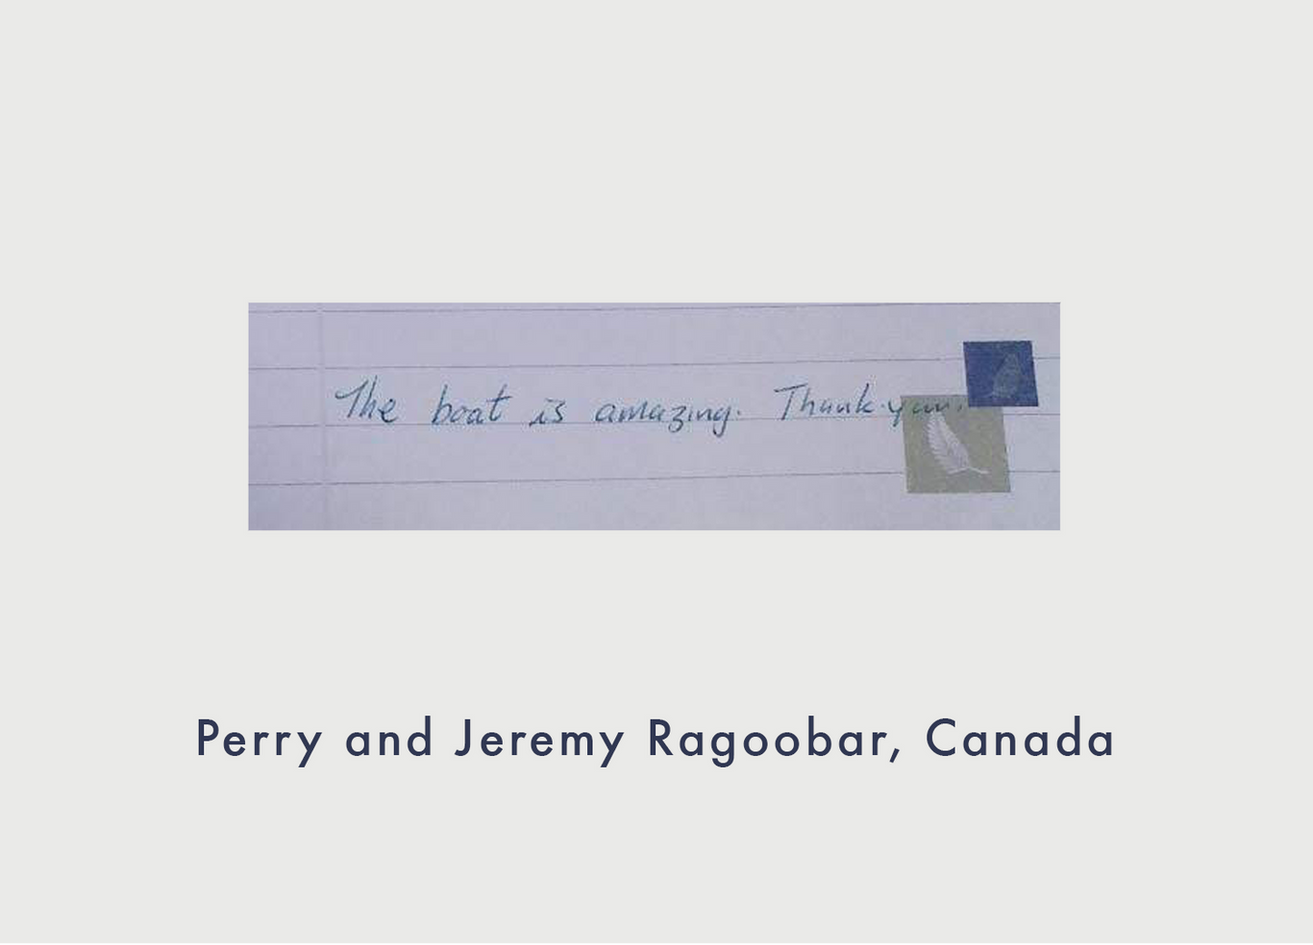 perry and jeremy ragoobar sukapha canada